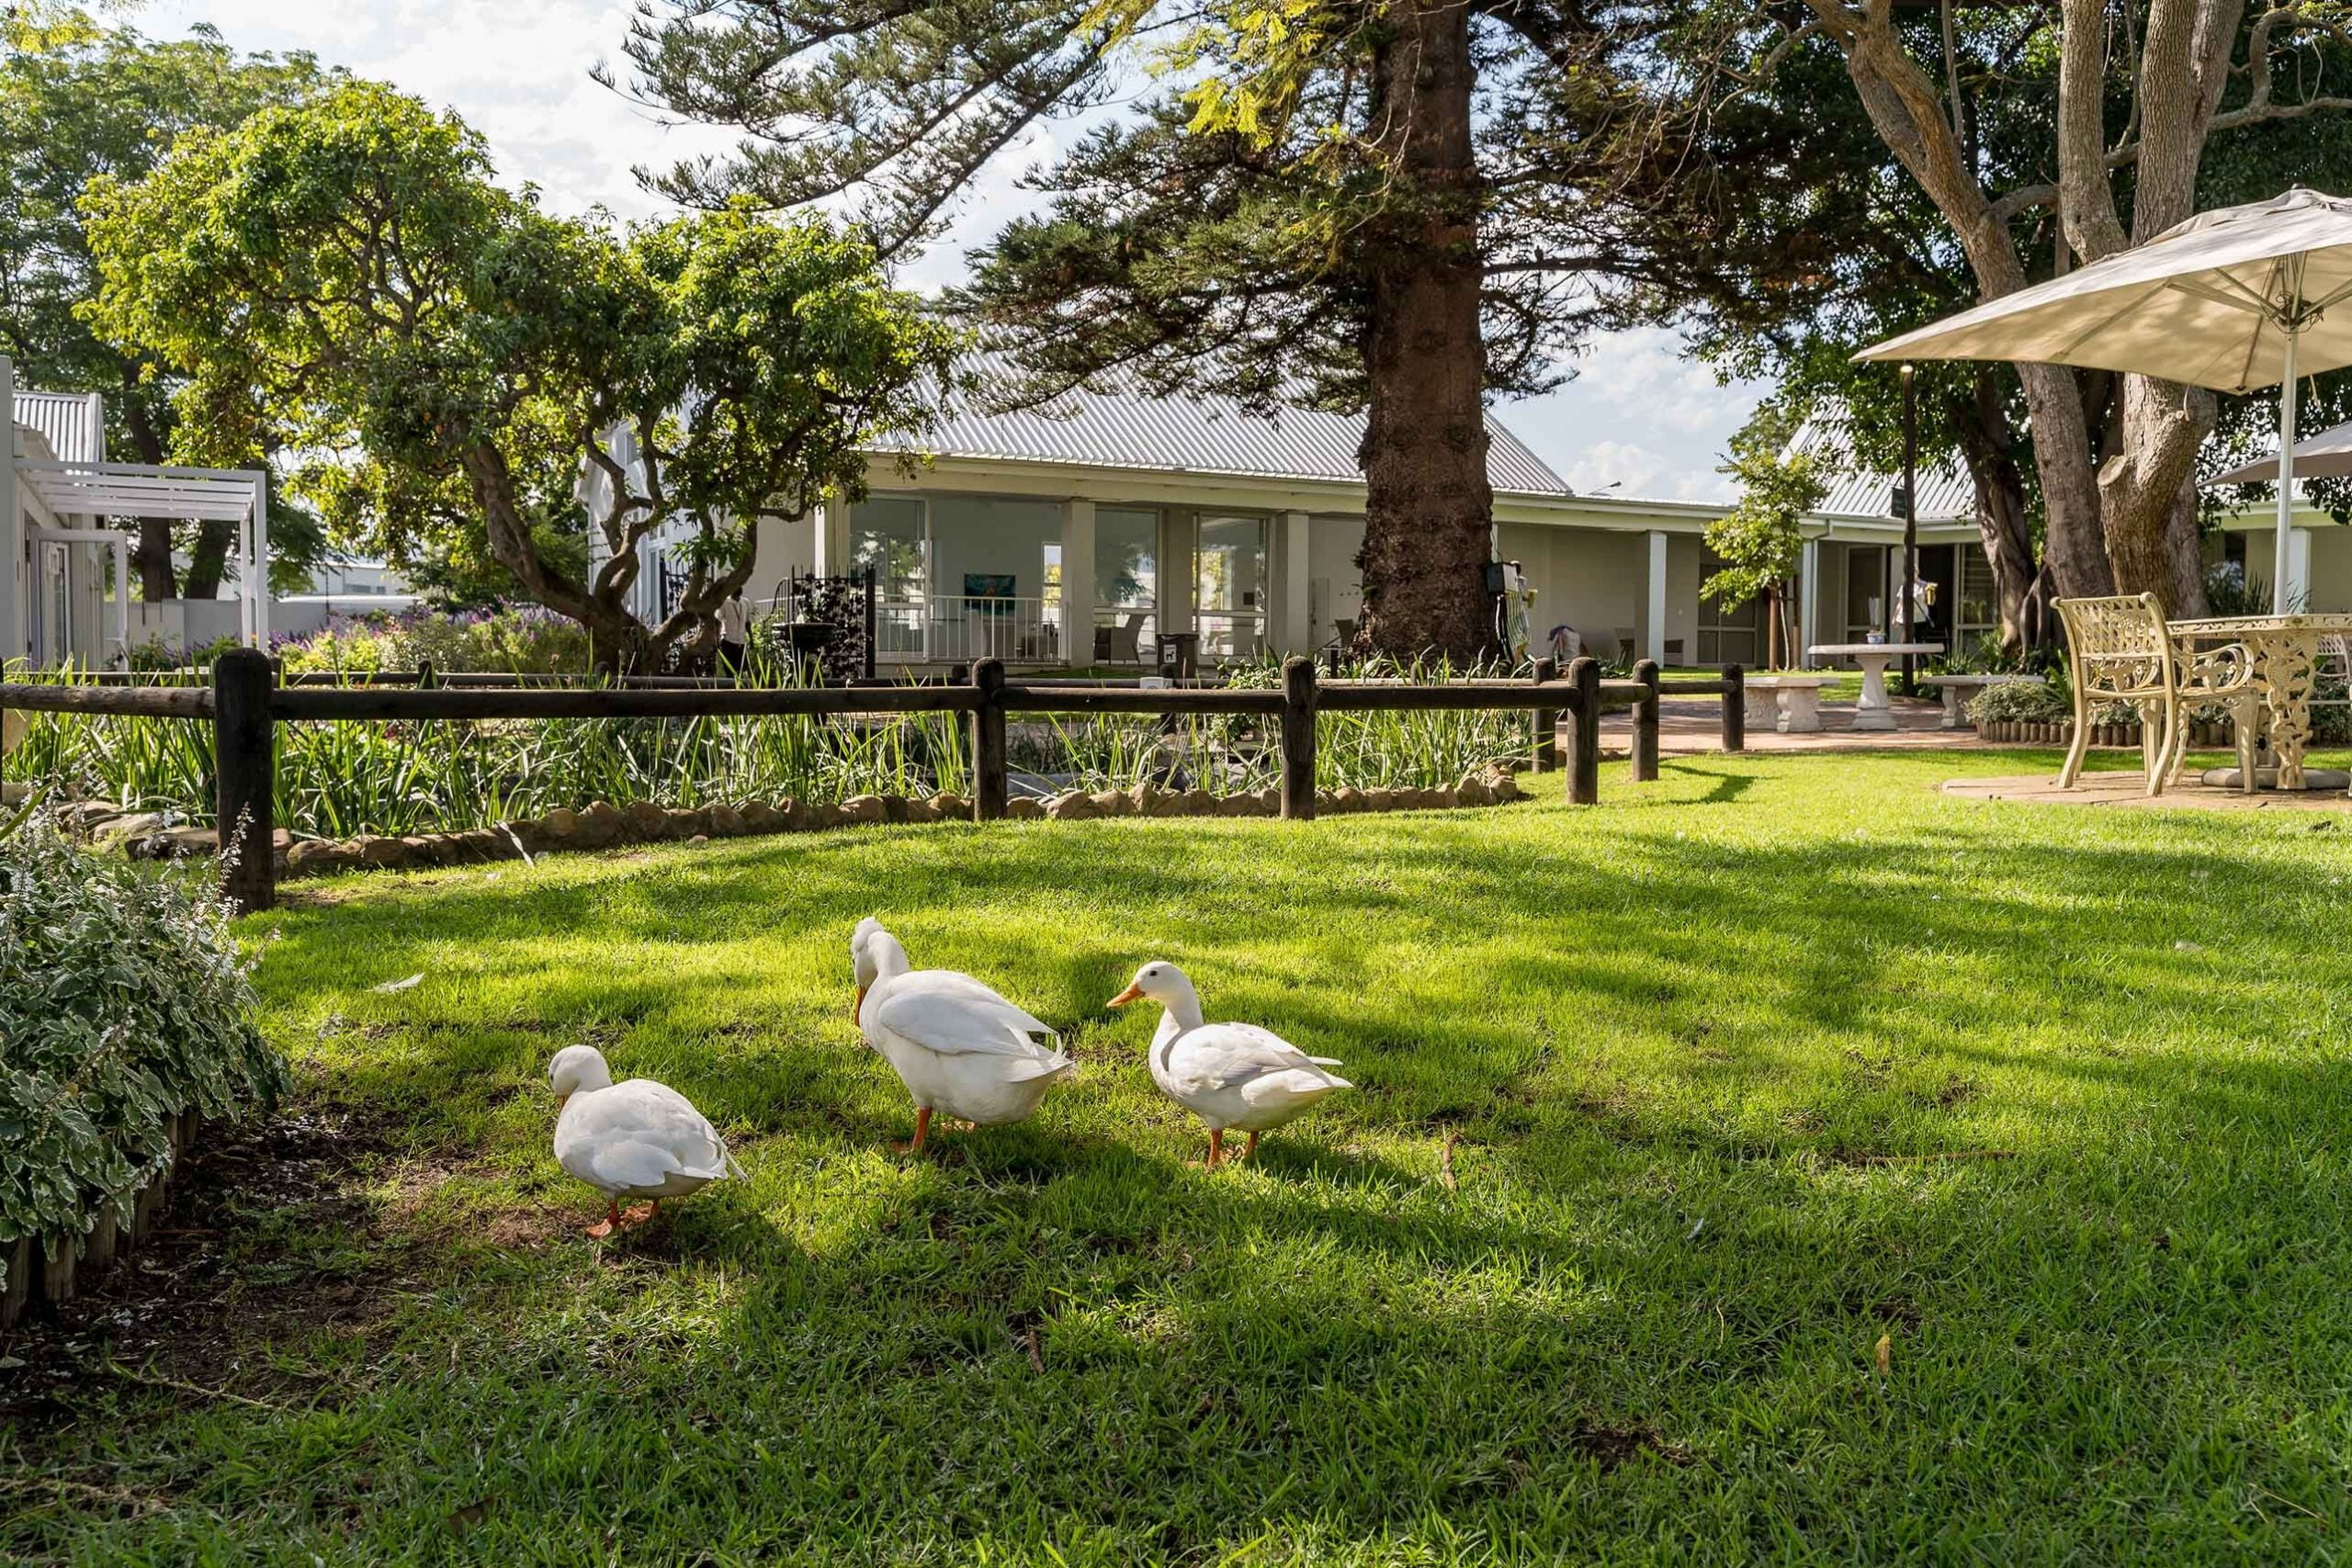 Social activity, relaxation, good food and community are a Western Cape Retirement dream at Faircape Life